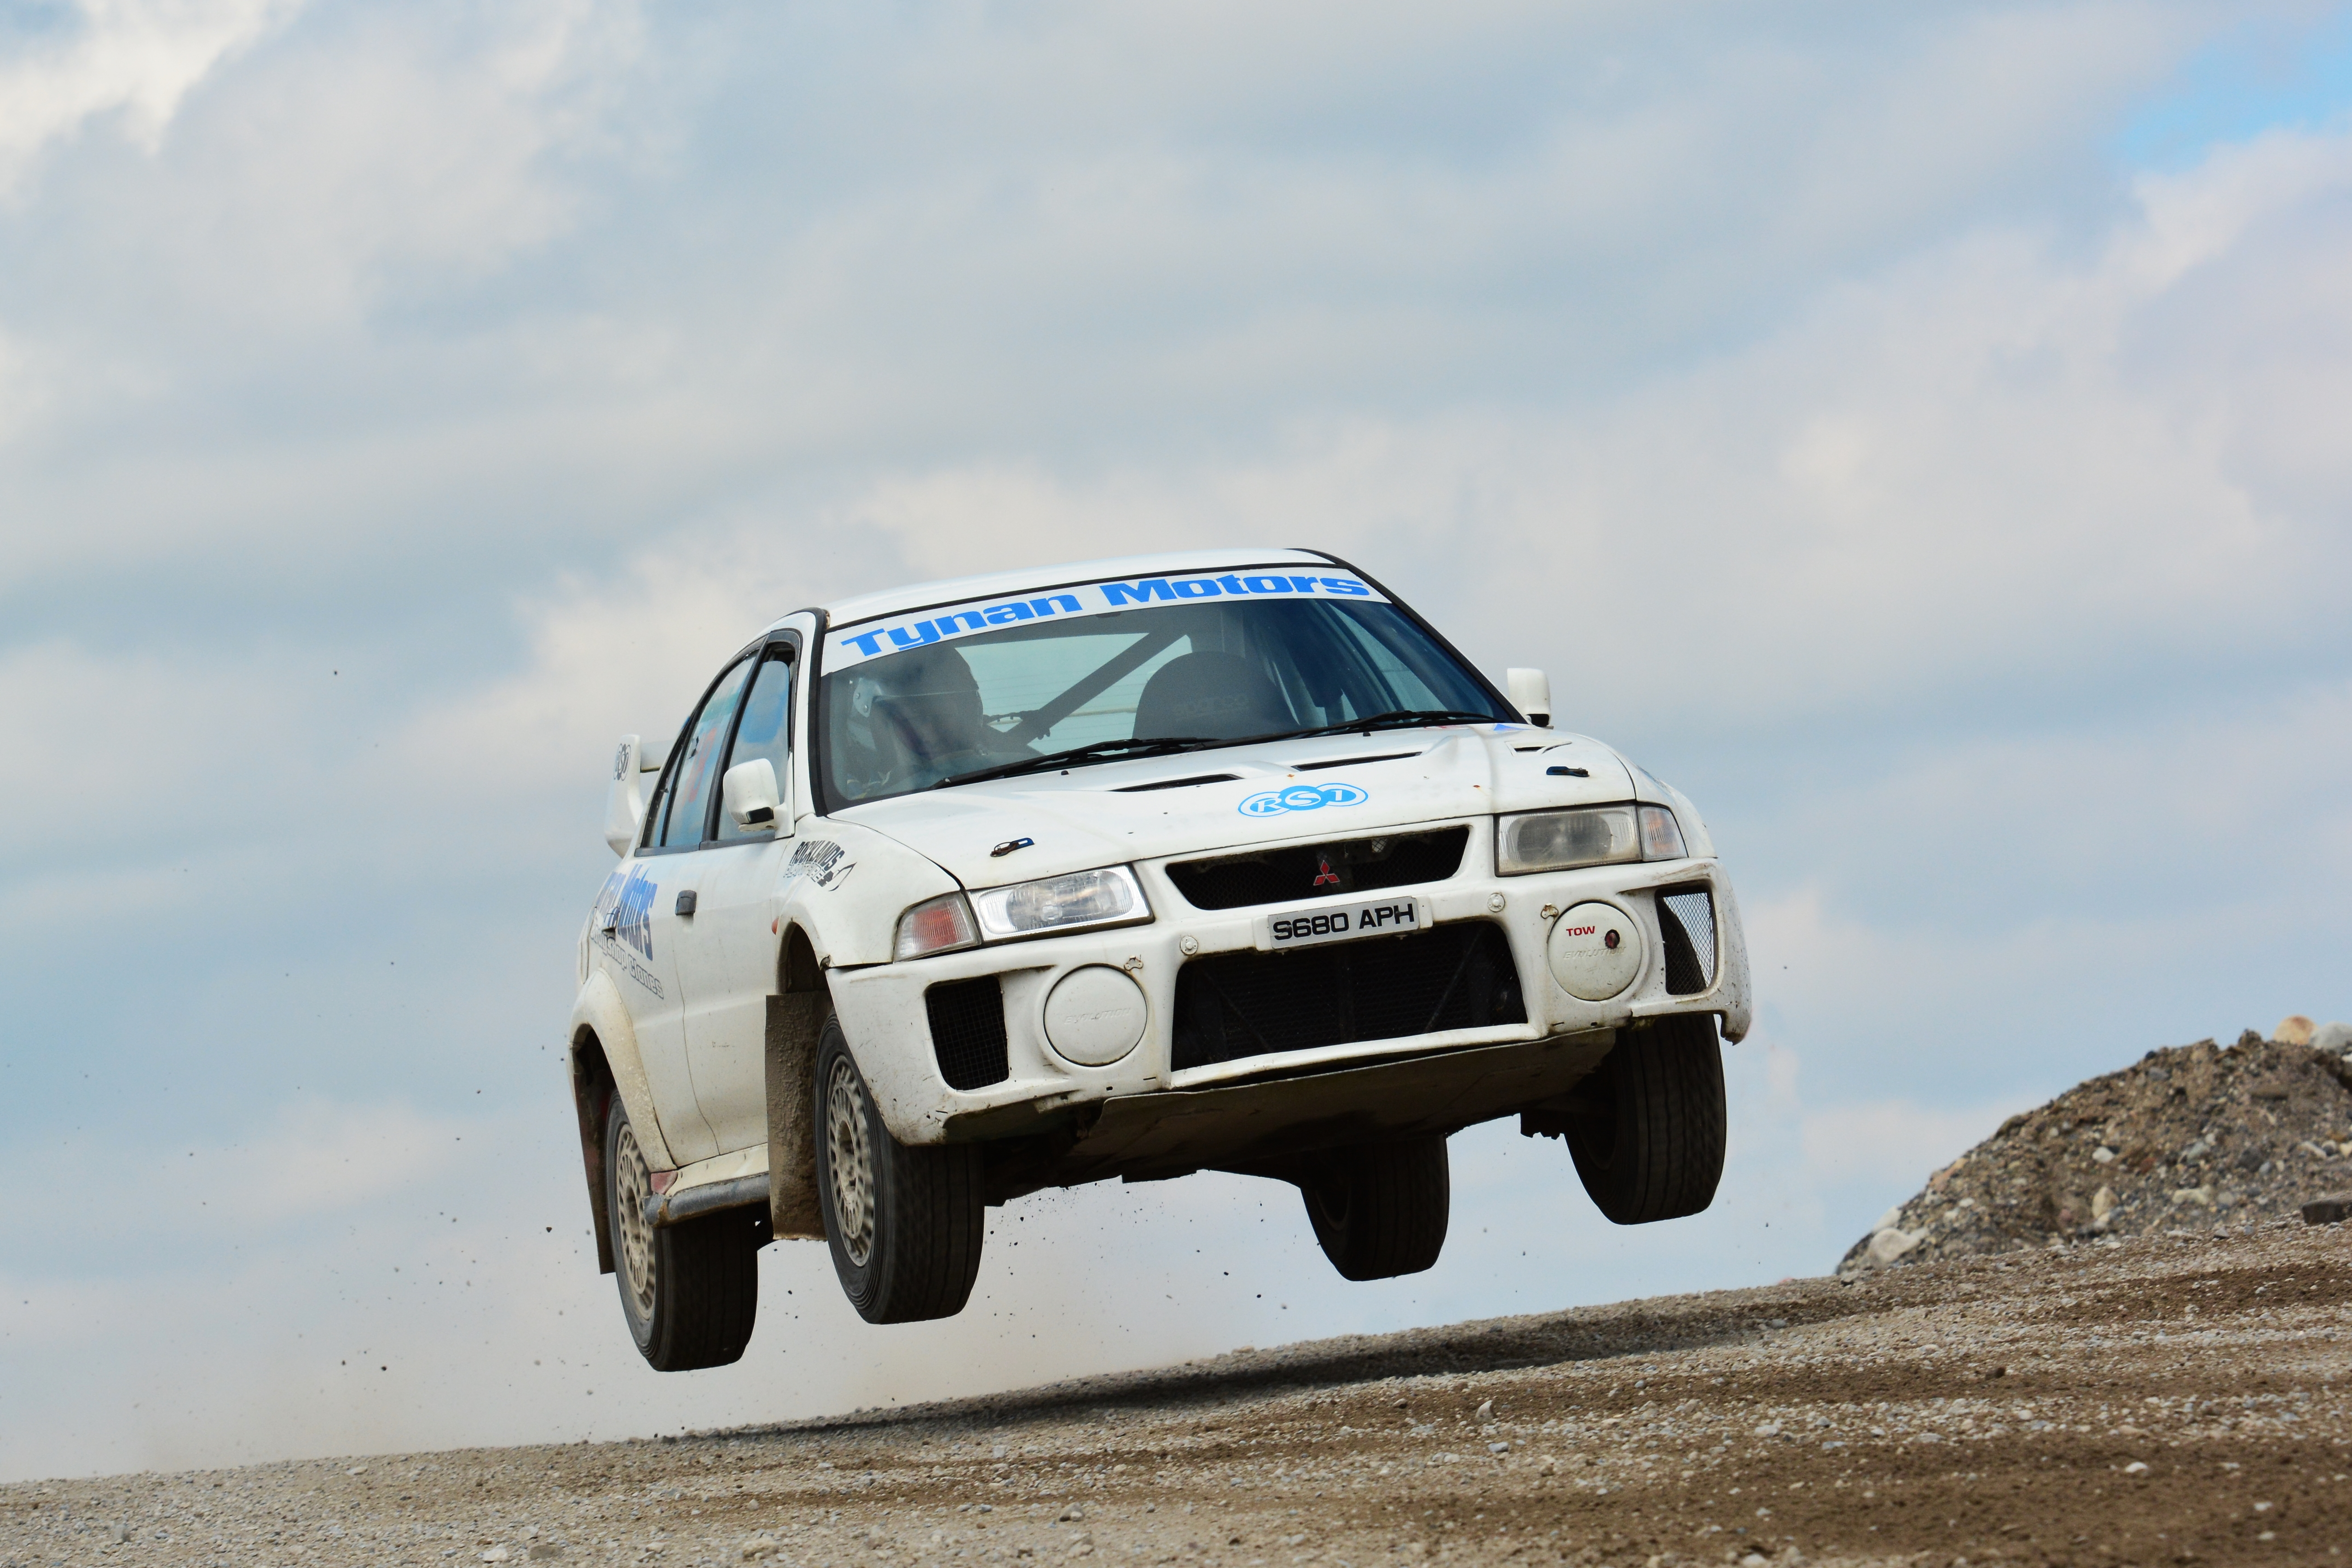 Winner Tynan Flying high at Mayo Autocross